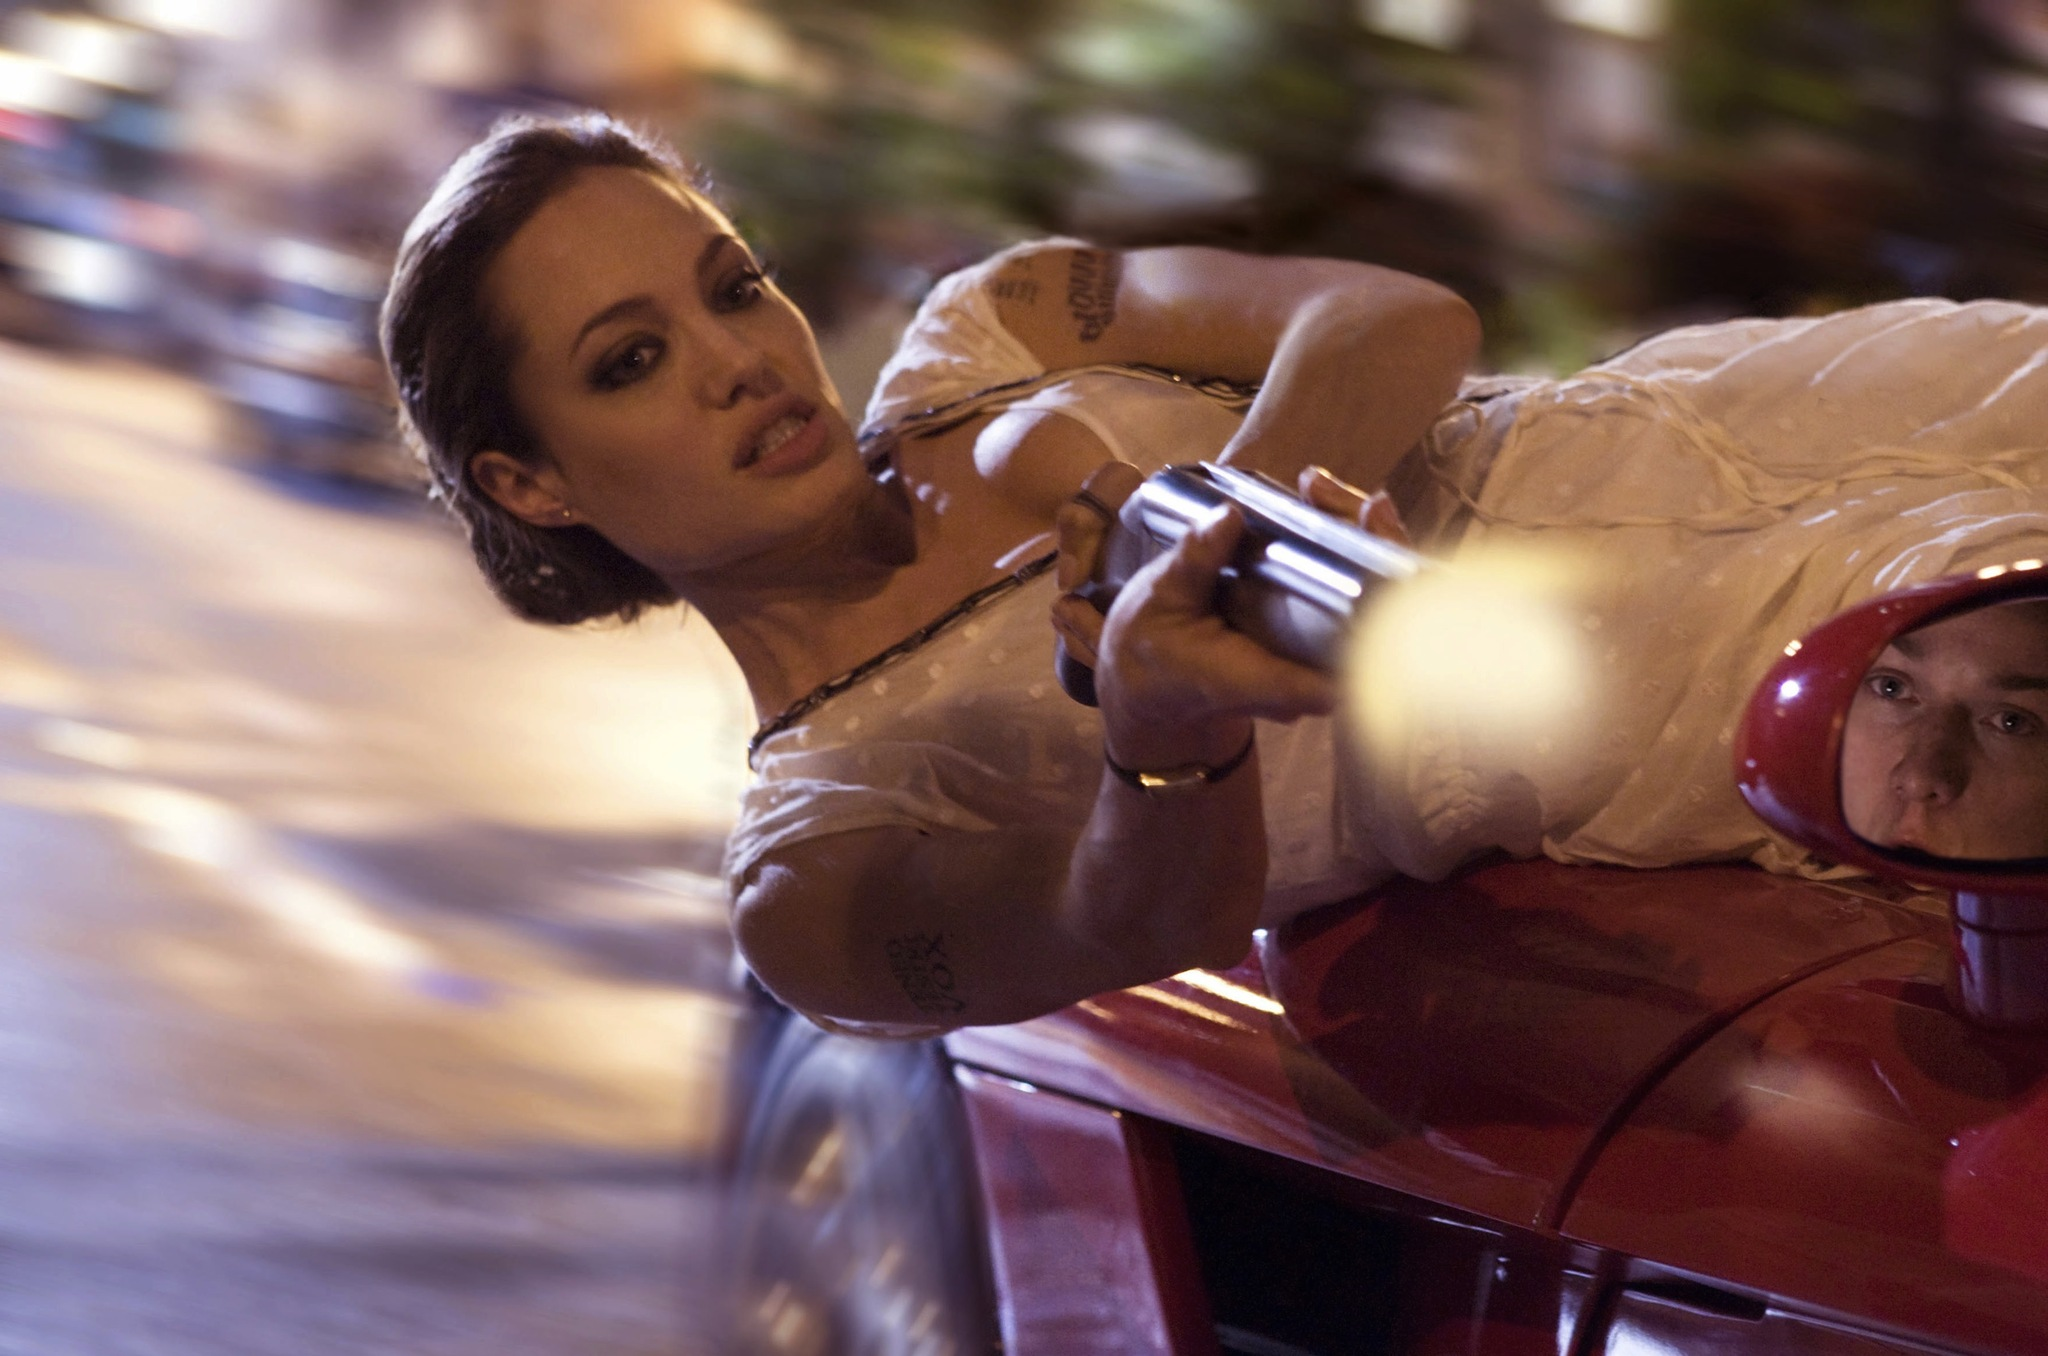 wanted full movie angelina jolie free download